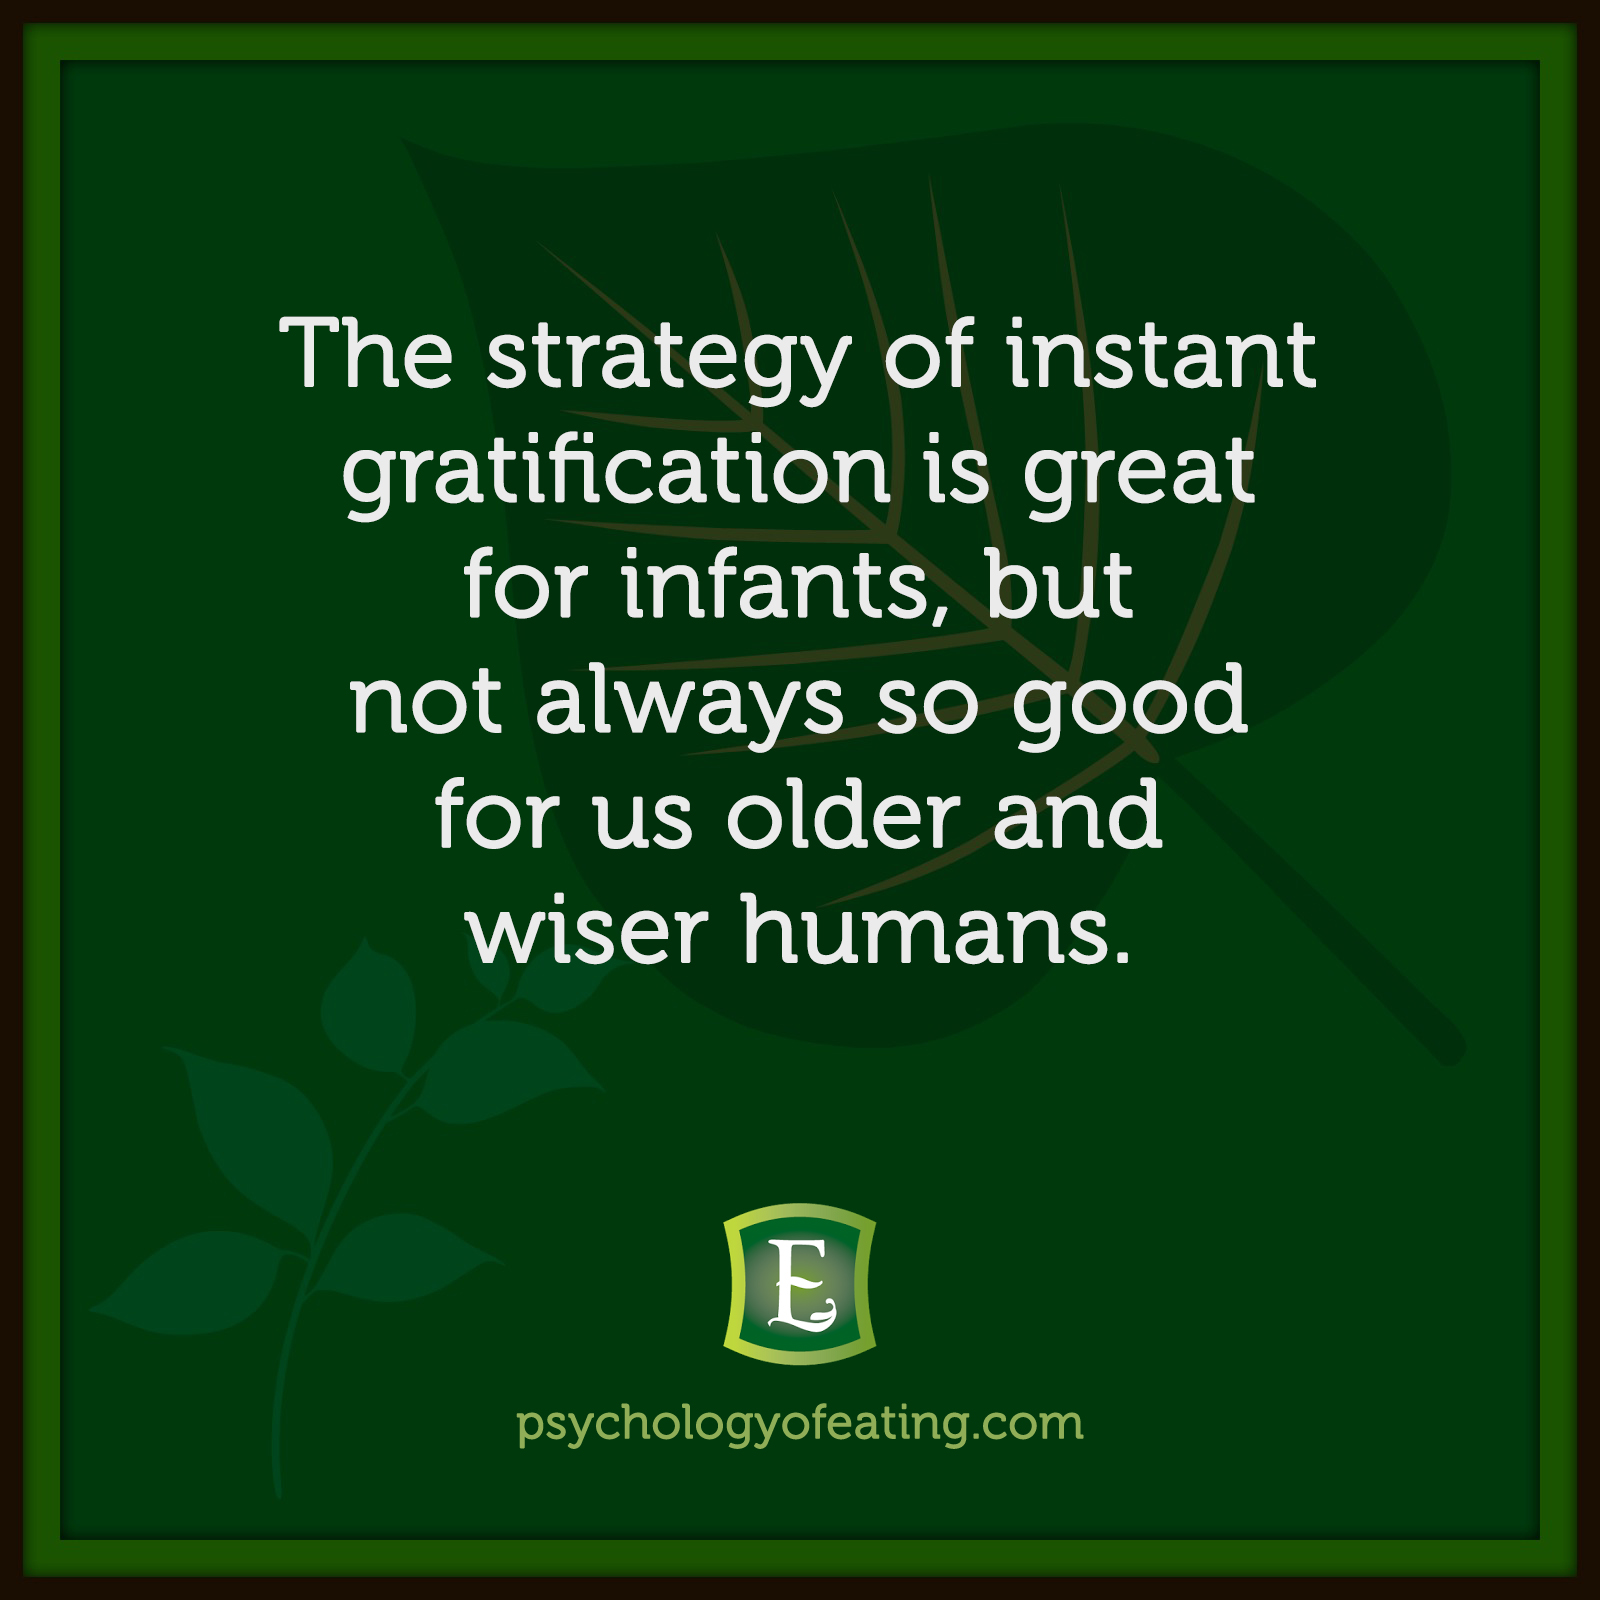 The strategy of instant gratification is great for infants, but not always so good for us older and wiser humans. #health #nutrition #eatingpsychology #IPE